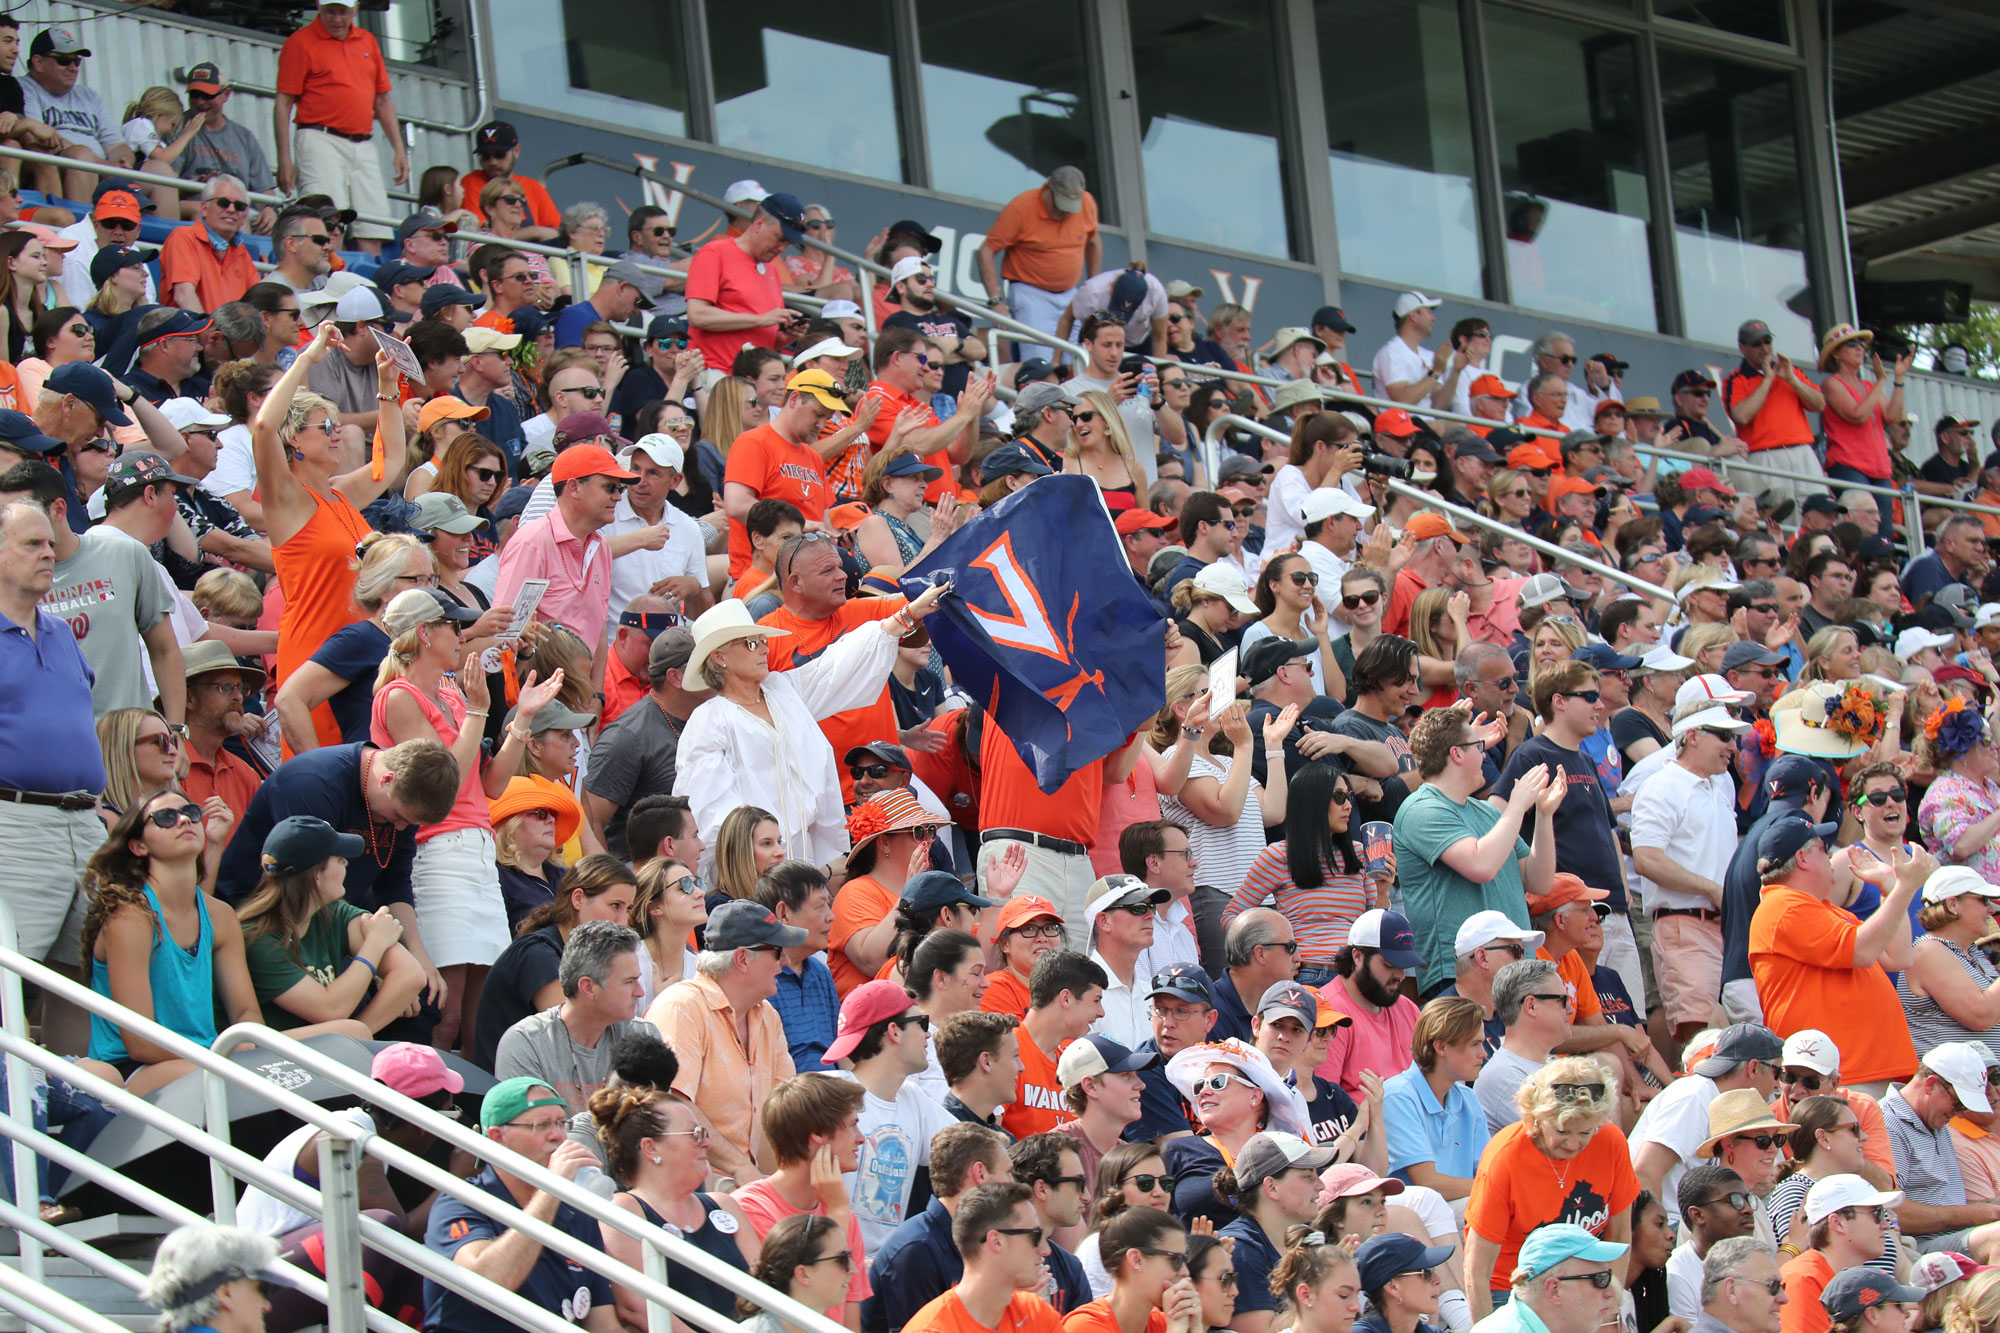 The crowd of 4,489 didn't hold back, cheering on the Hoos the whole time. (Photo by Matt Riley, UVA Athletics)